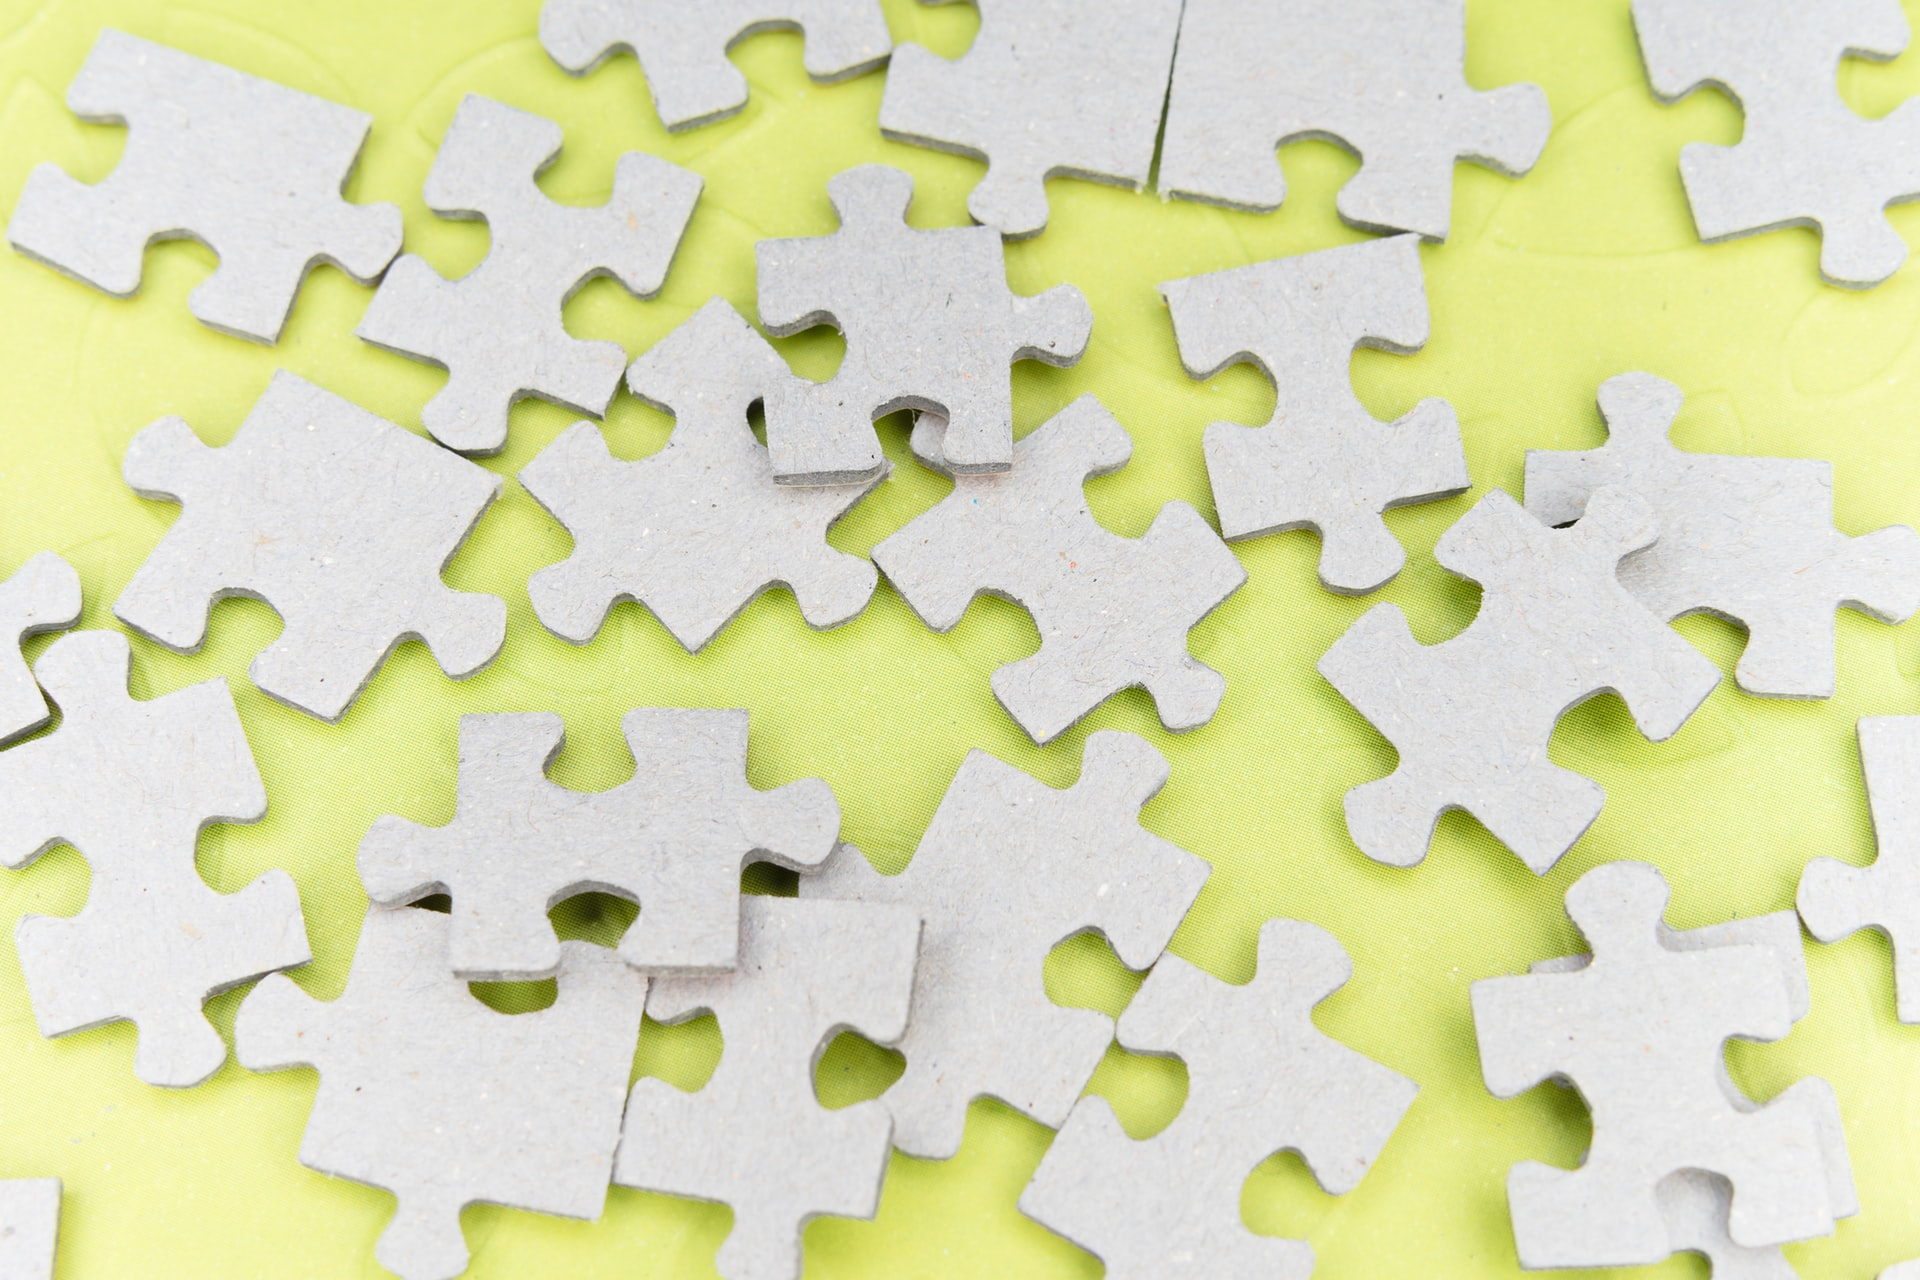 Learn more about the puzzle pieces you need to solve common insights challenges